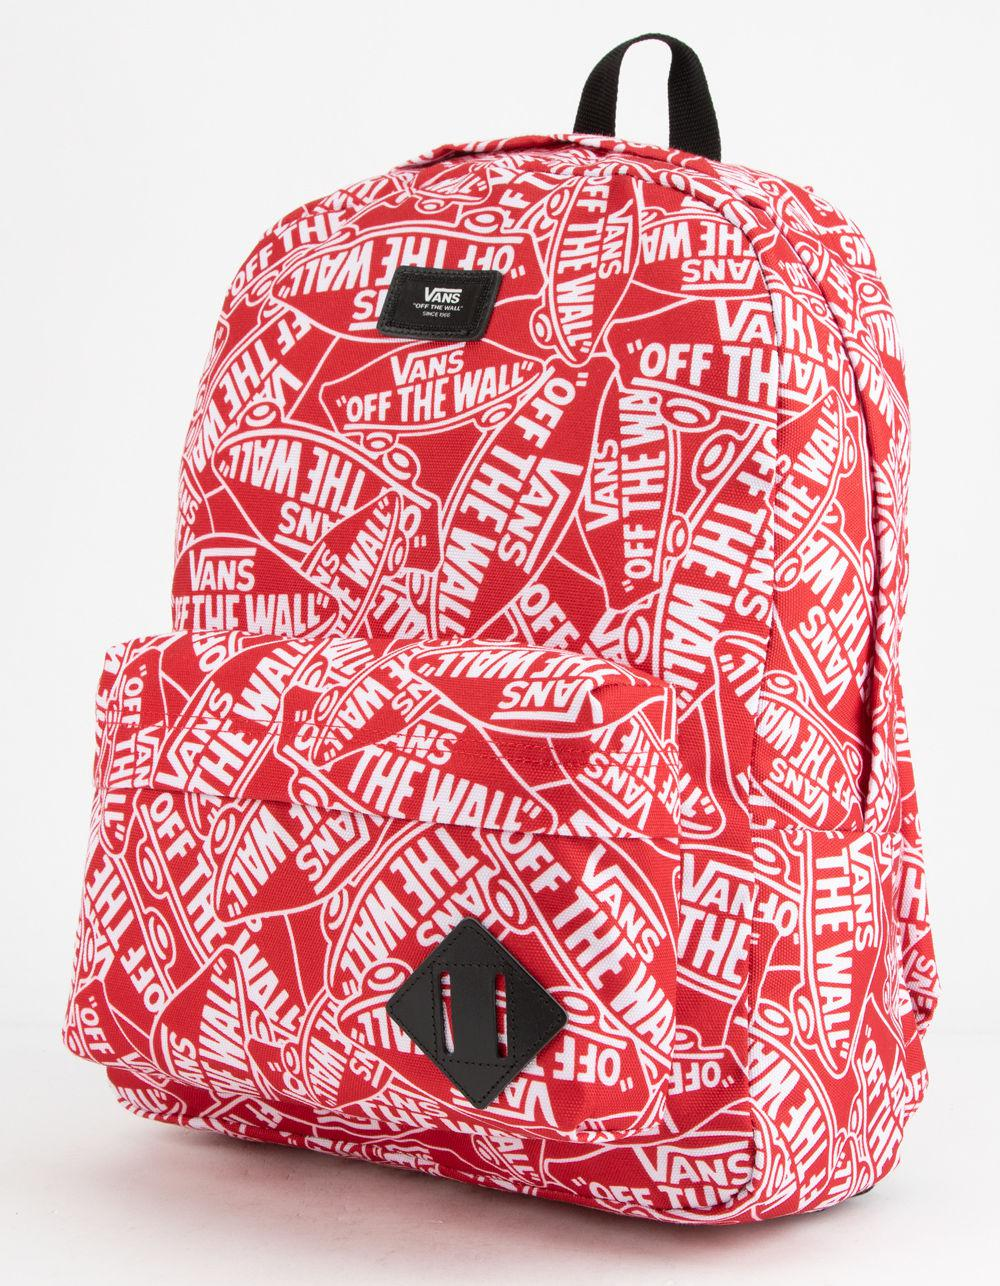 Lyst - Vans Old Skool Ii Red Backpack in Red